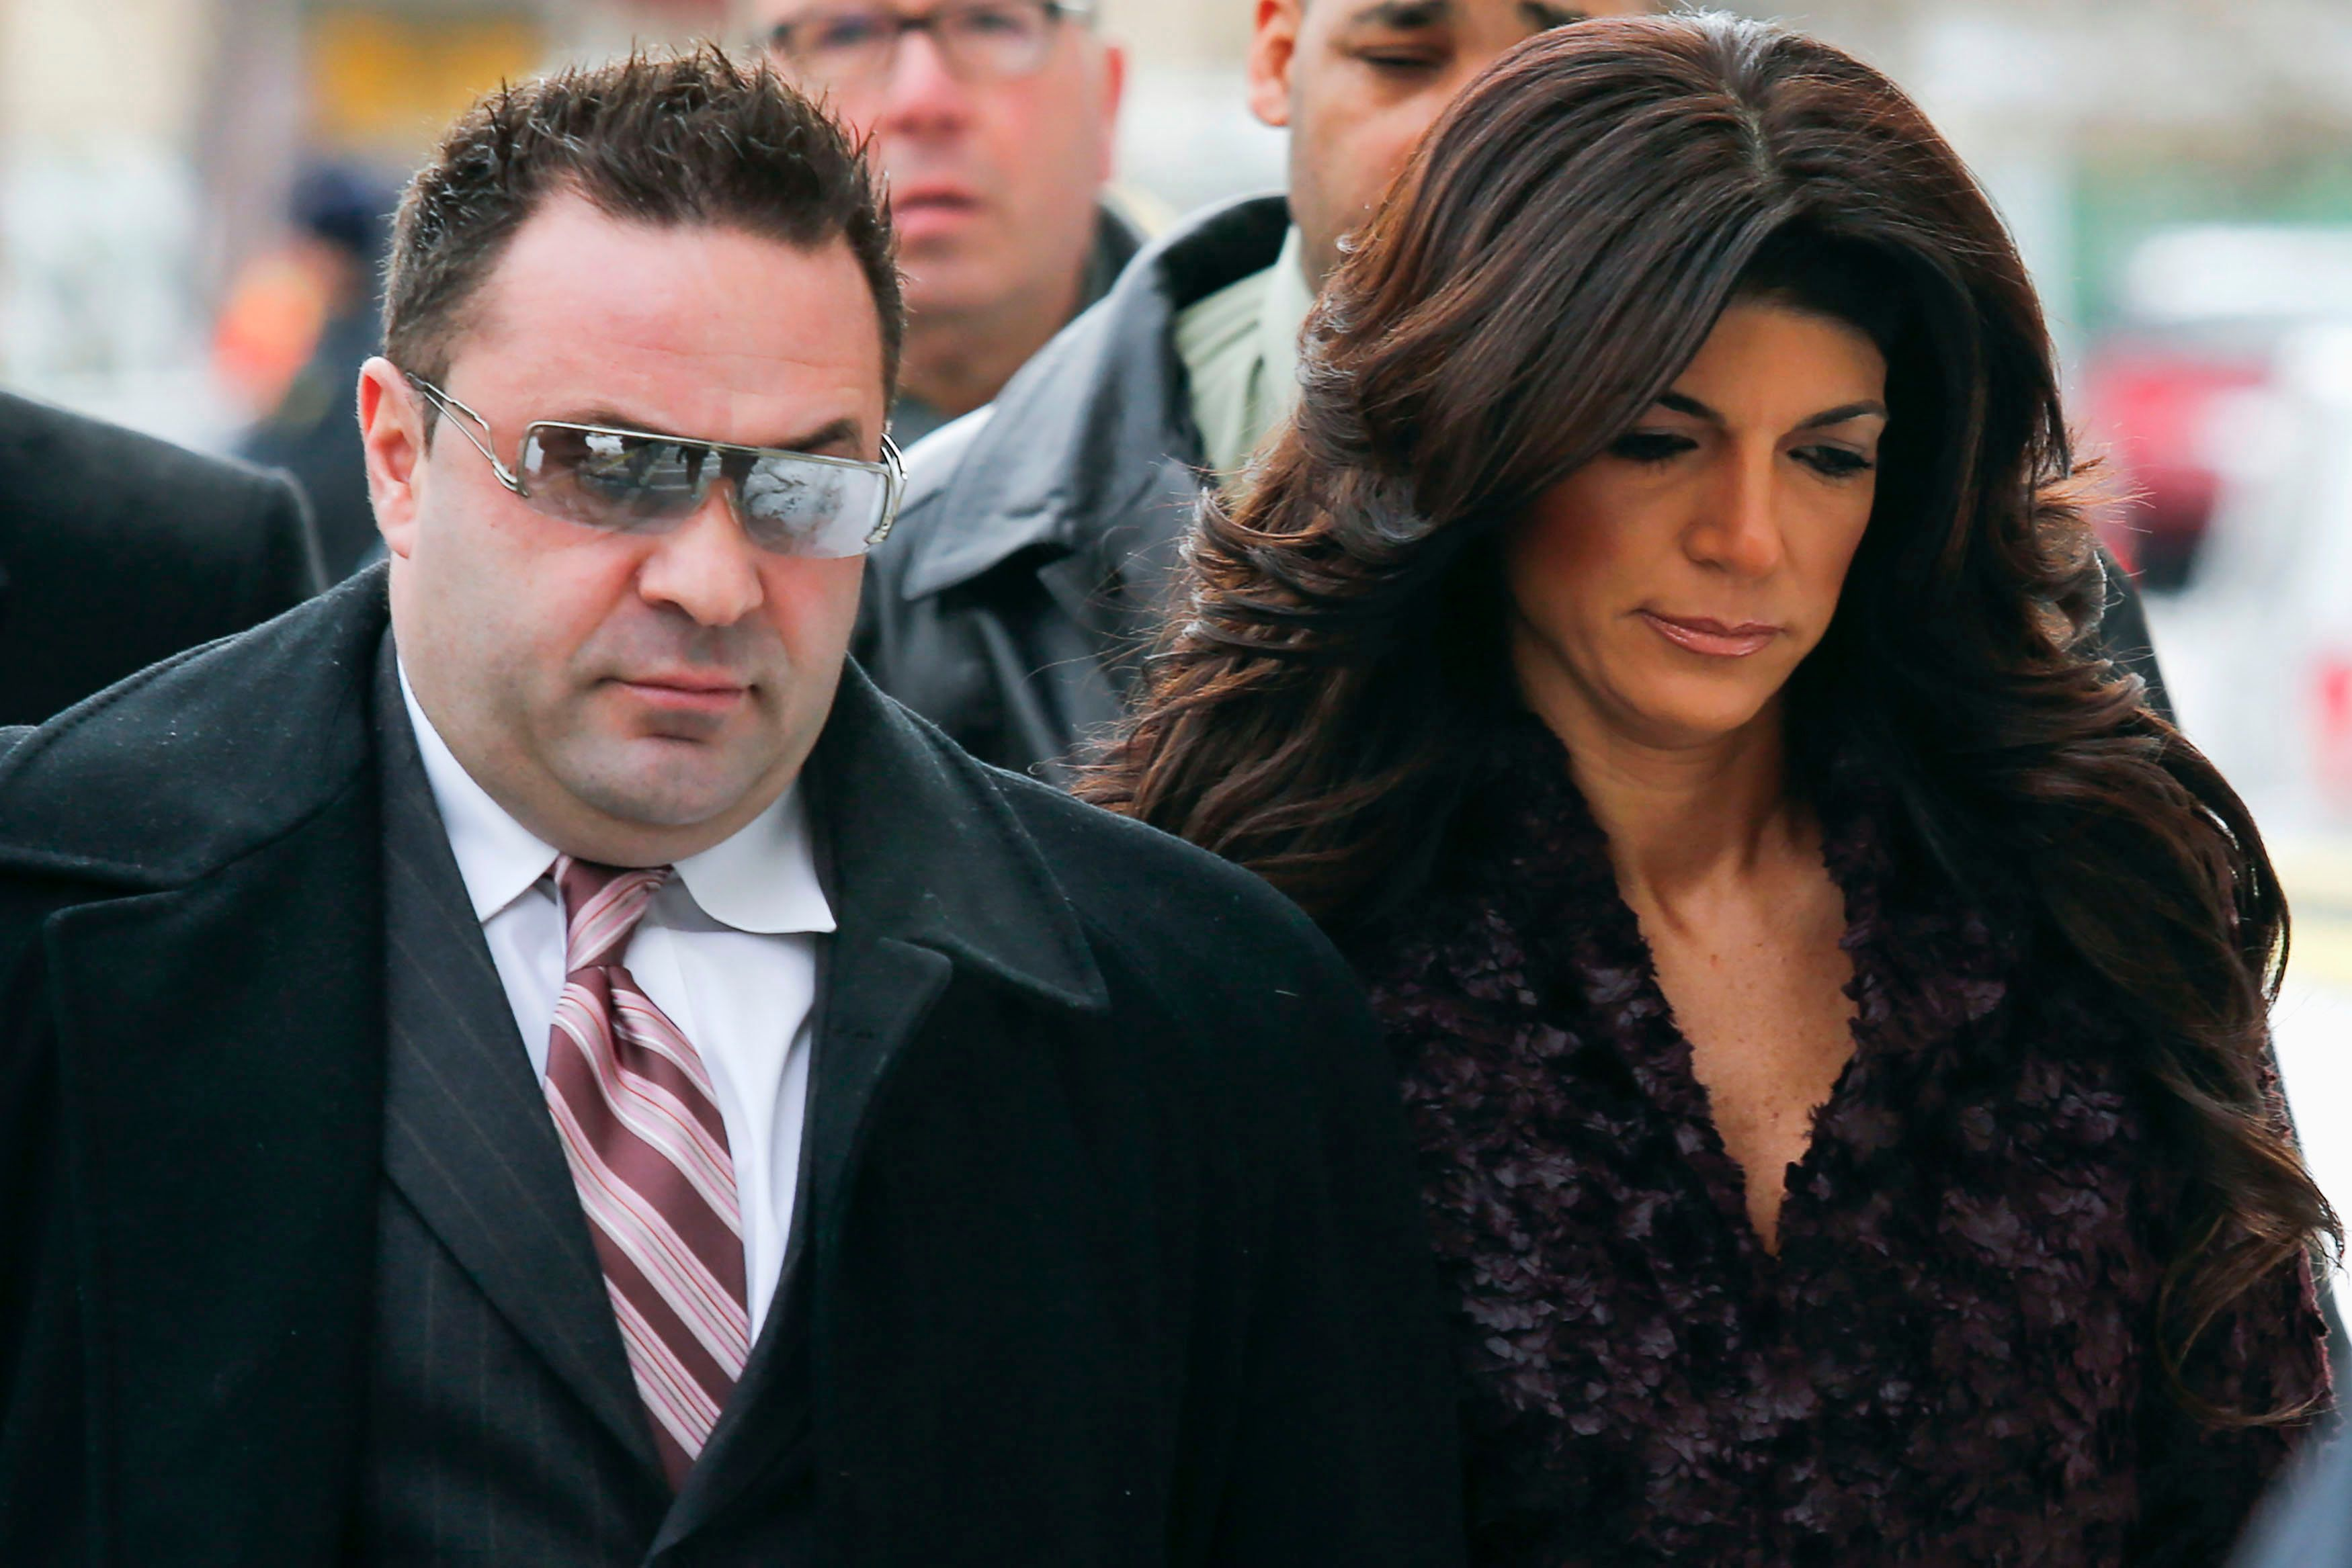 """Teresa Giudice, 41, (R) and her husband Giuseppe """"Joe"""" Giudice, 43, (L) arrive at the Federal Court in Newark, New Jersey, March 4, 2014. """"Real Housewives of New Jersey"""" cast members Teresa and Giuseppe are expected to plead guilty to charges stemming from their loan fraud case in which prosecutors say they lied on financial applications and hid income. REUTERS/Eduardo Munoz (UNITED STATES - Tags: CRIME LAW ENTERTAINMENT)"""